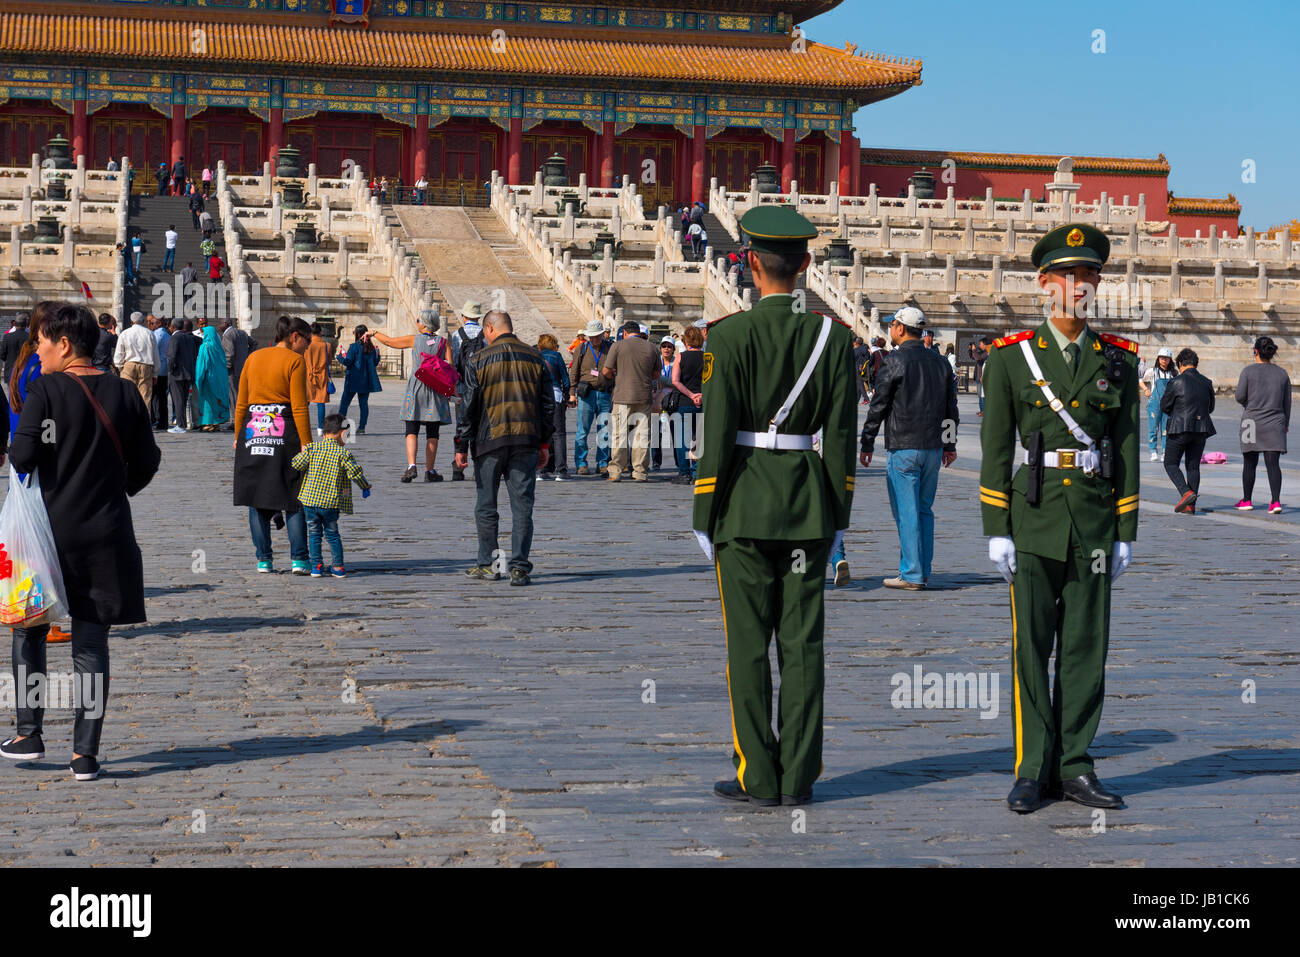 Soldiers stand guard in the forbidden city, in Beijing China - Stock Image